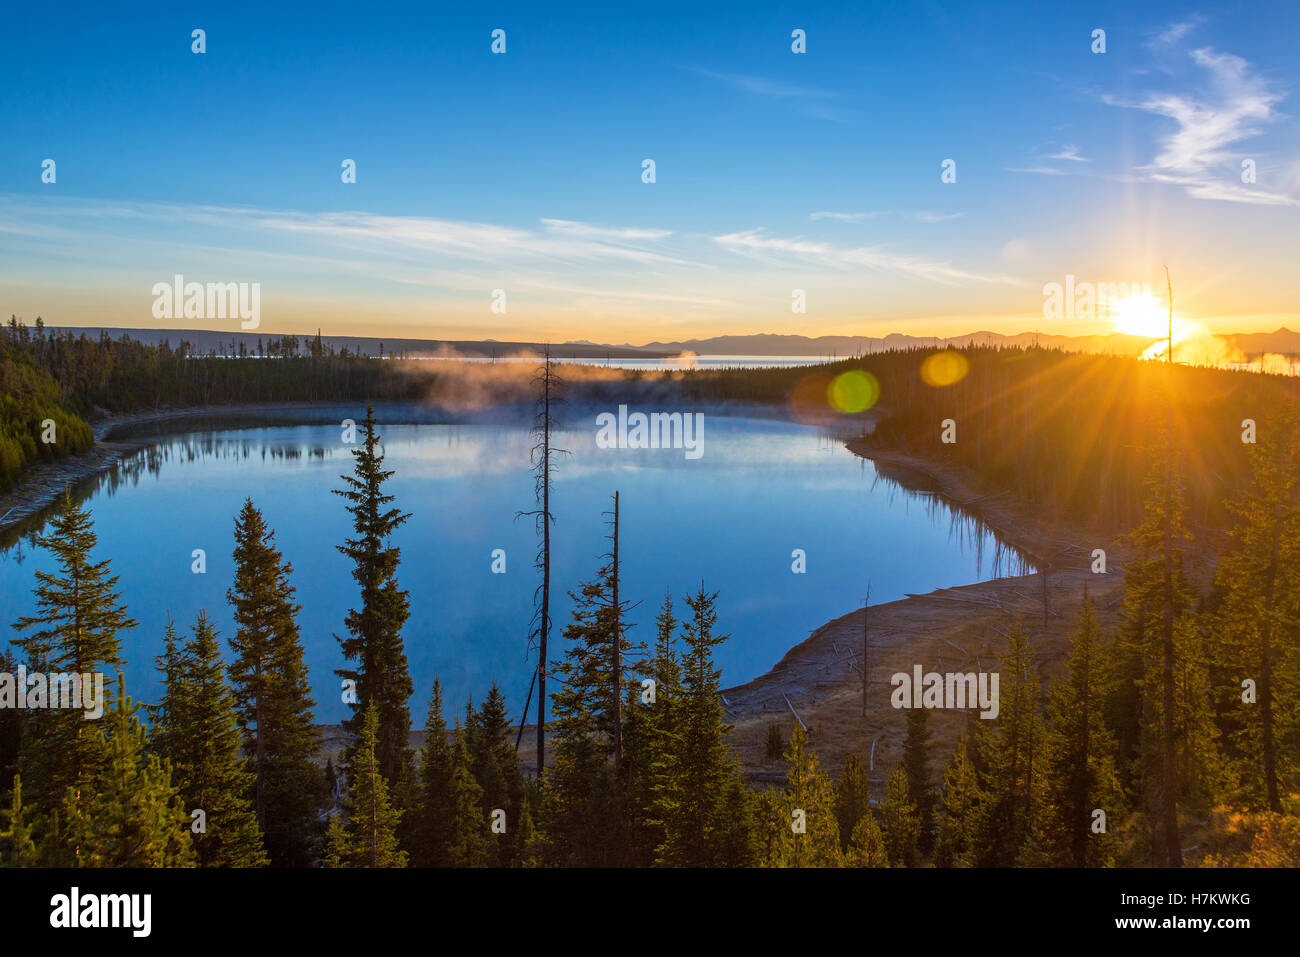 Amanecer sobre Yellowstone Lake en el Parque Nacional de Yellowstone en Wyoming Imagen De Stock